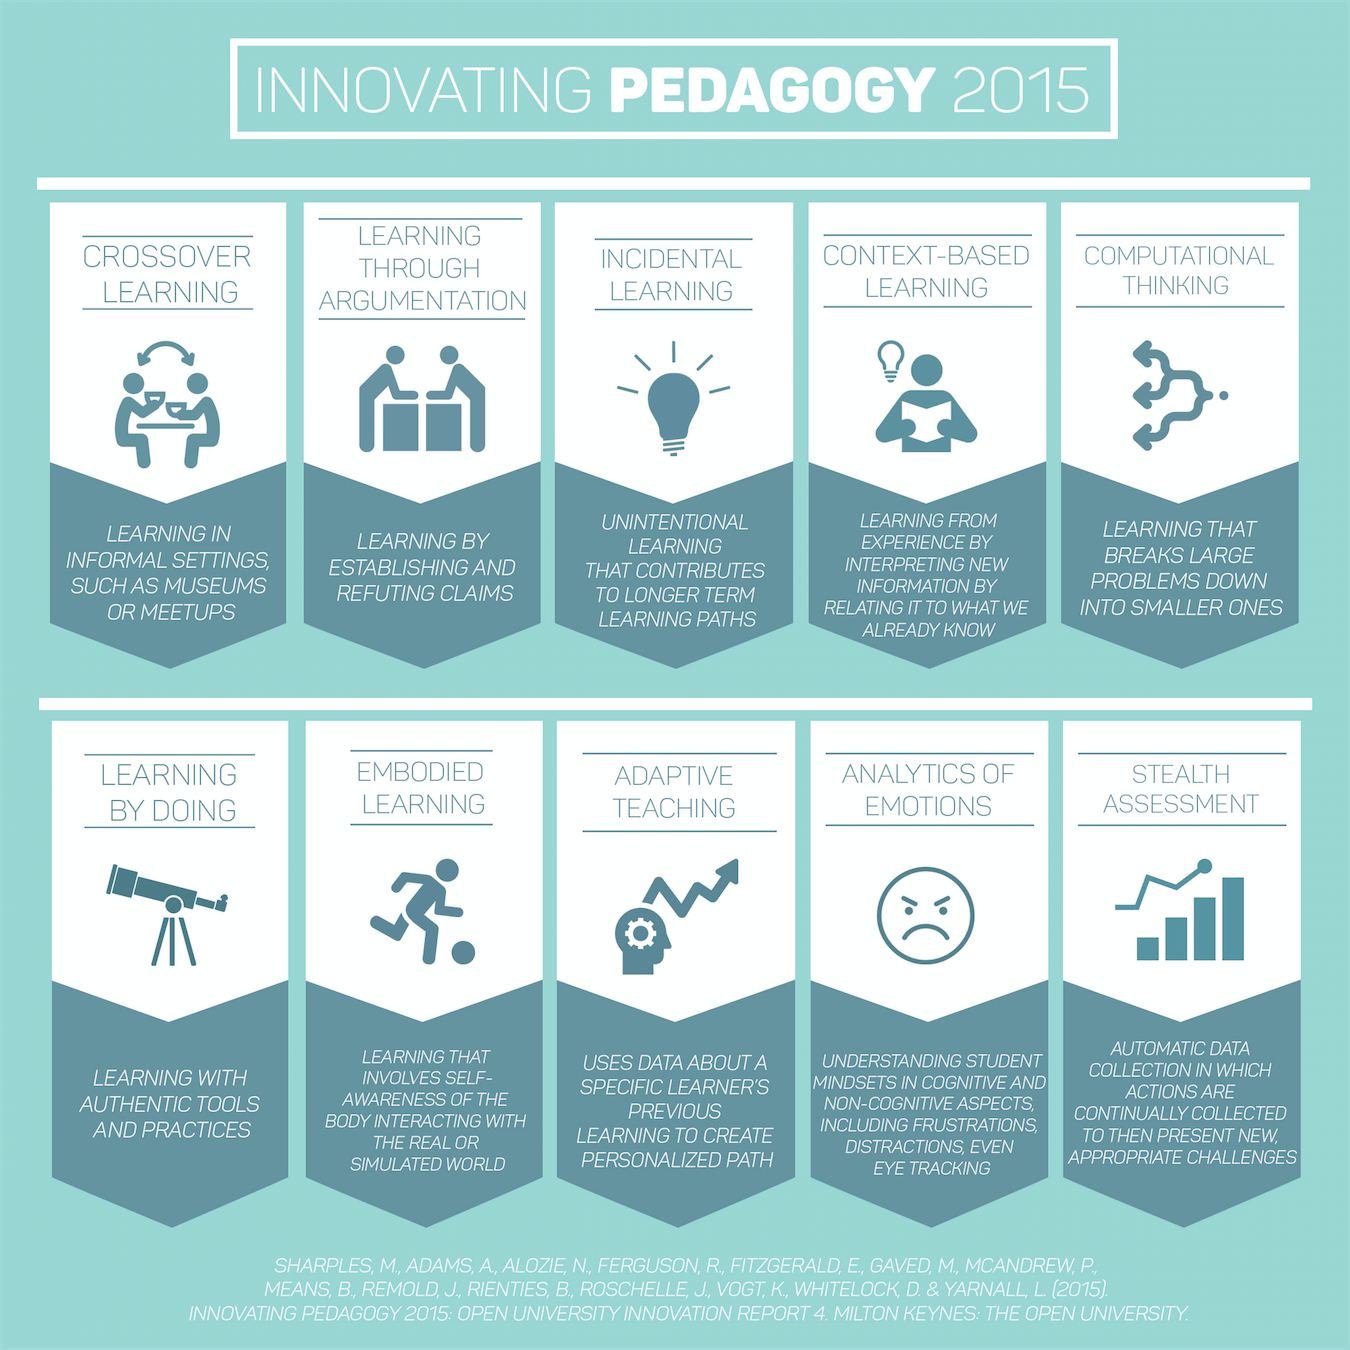 Infographic summarizing innovating pedagogy 2015